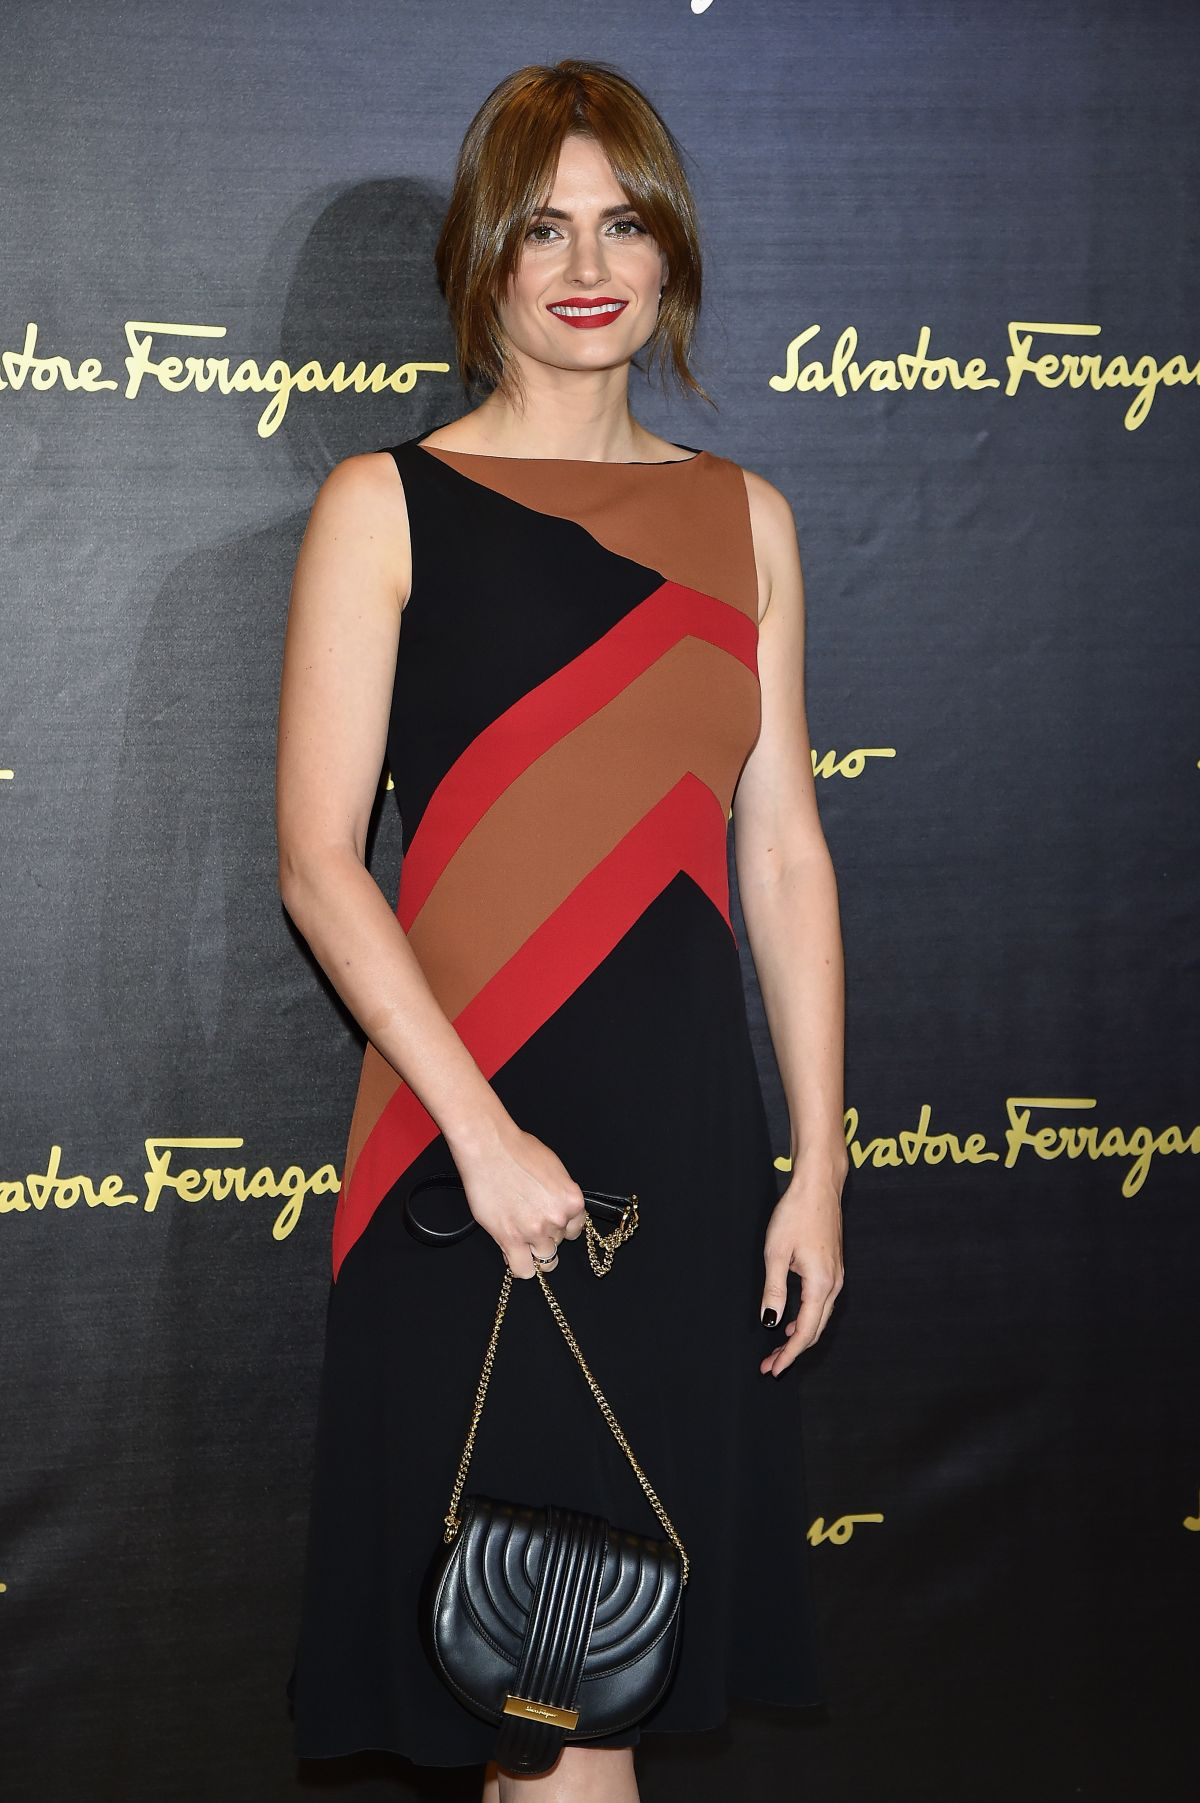 STANA KATIC at Salvatore Ferragamo Fashion Show at Milan Fashion Week 09/27/2015